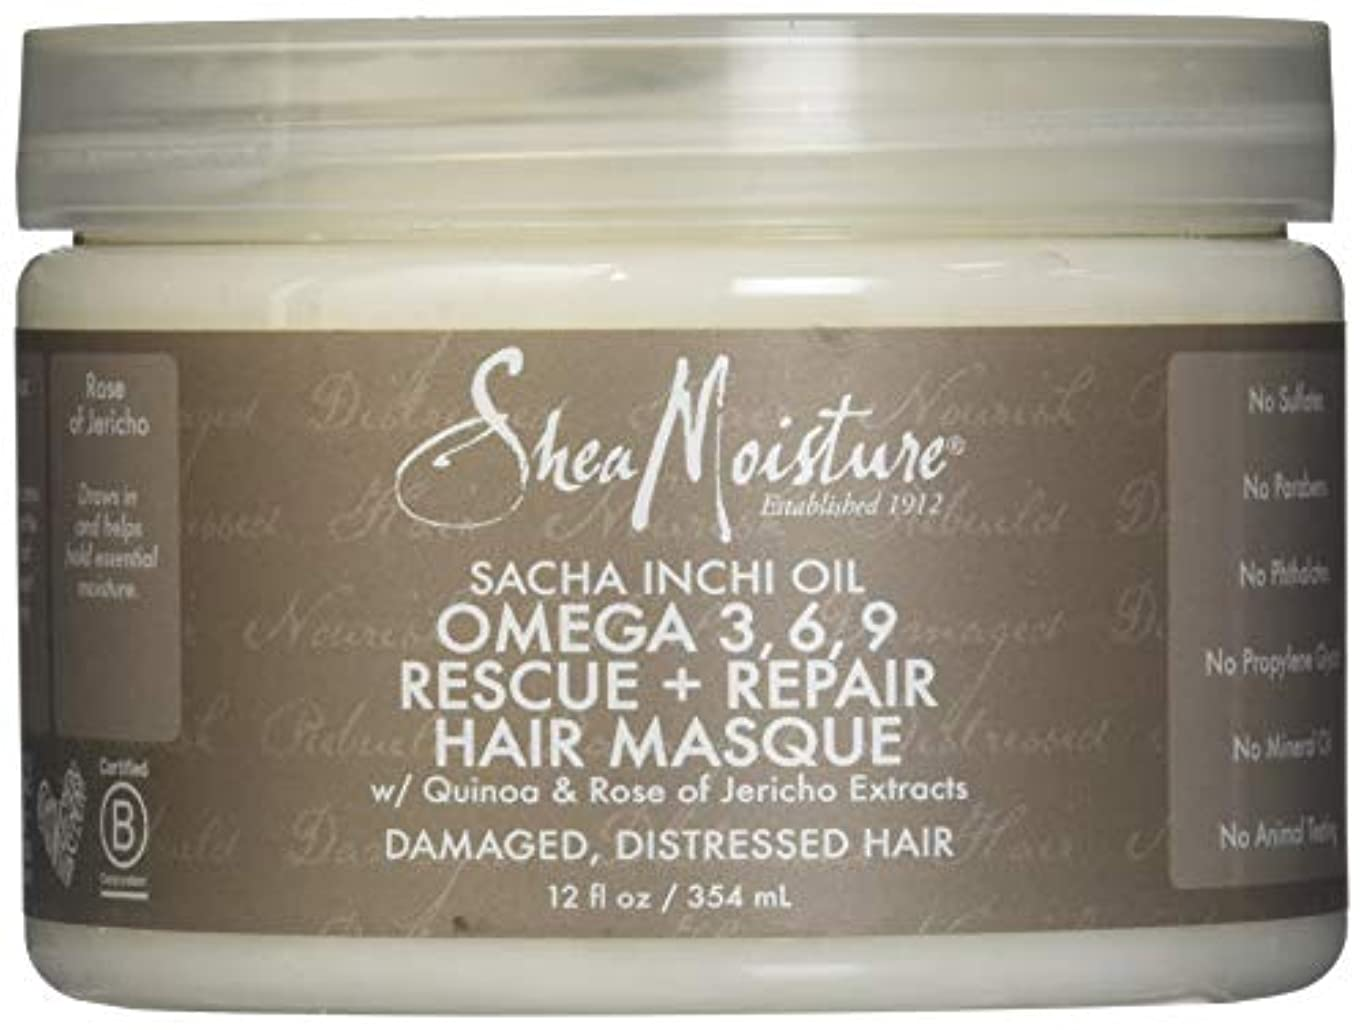 Sacha Inchi Oil Omega-3-6-9 Rescue & Repair Hair Masque